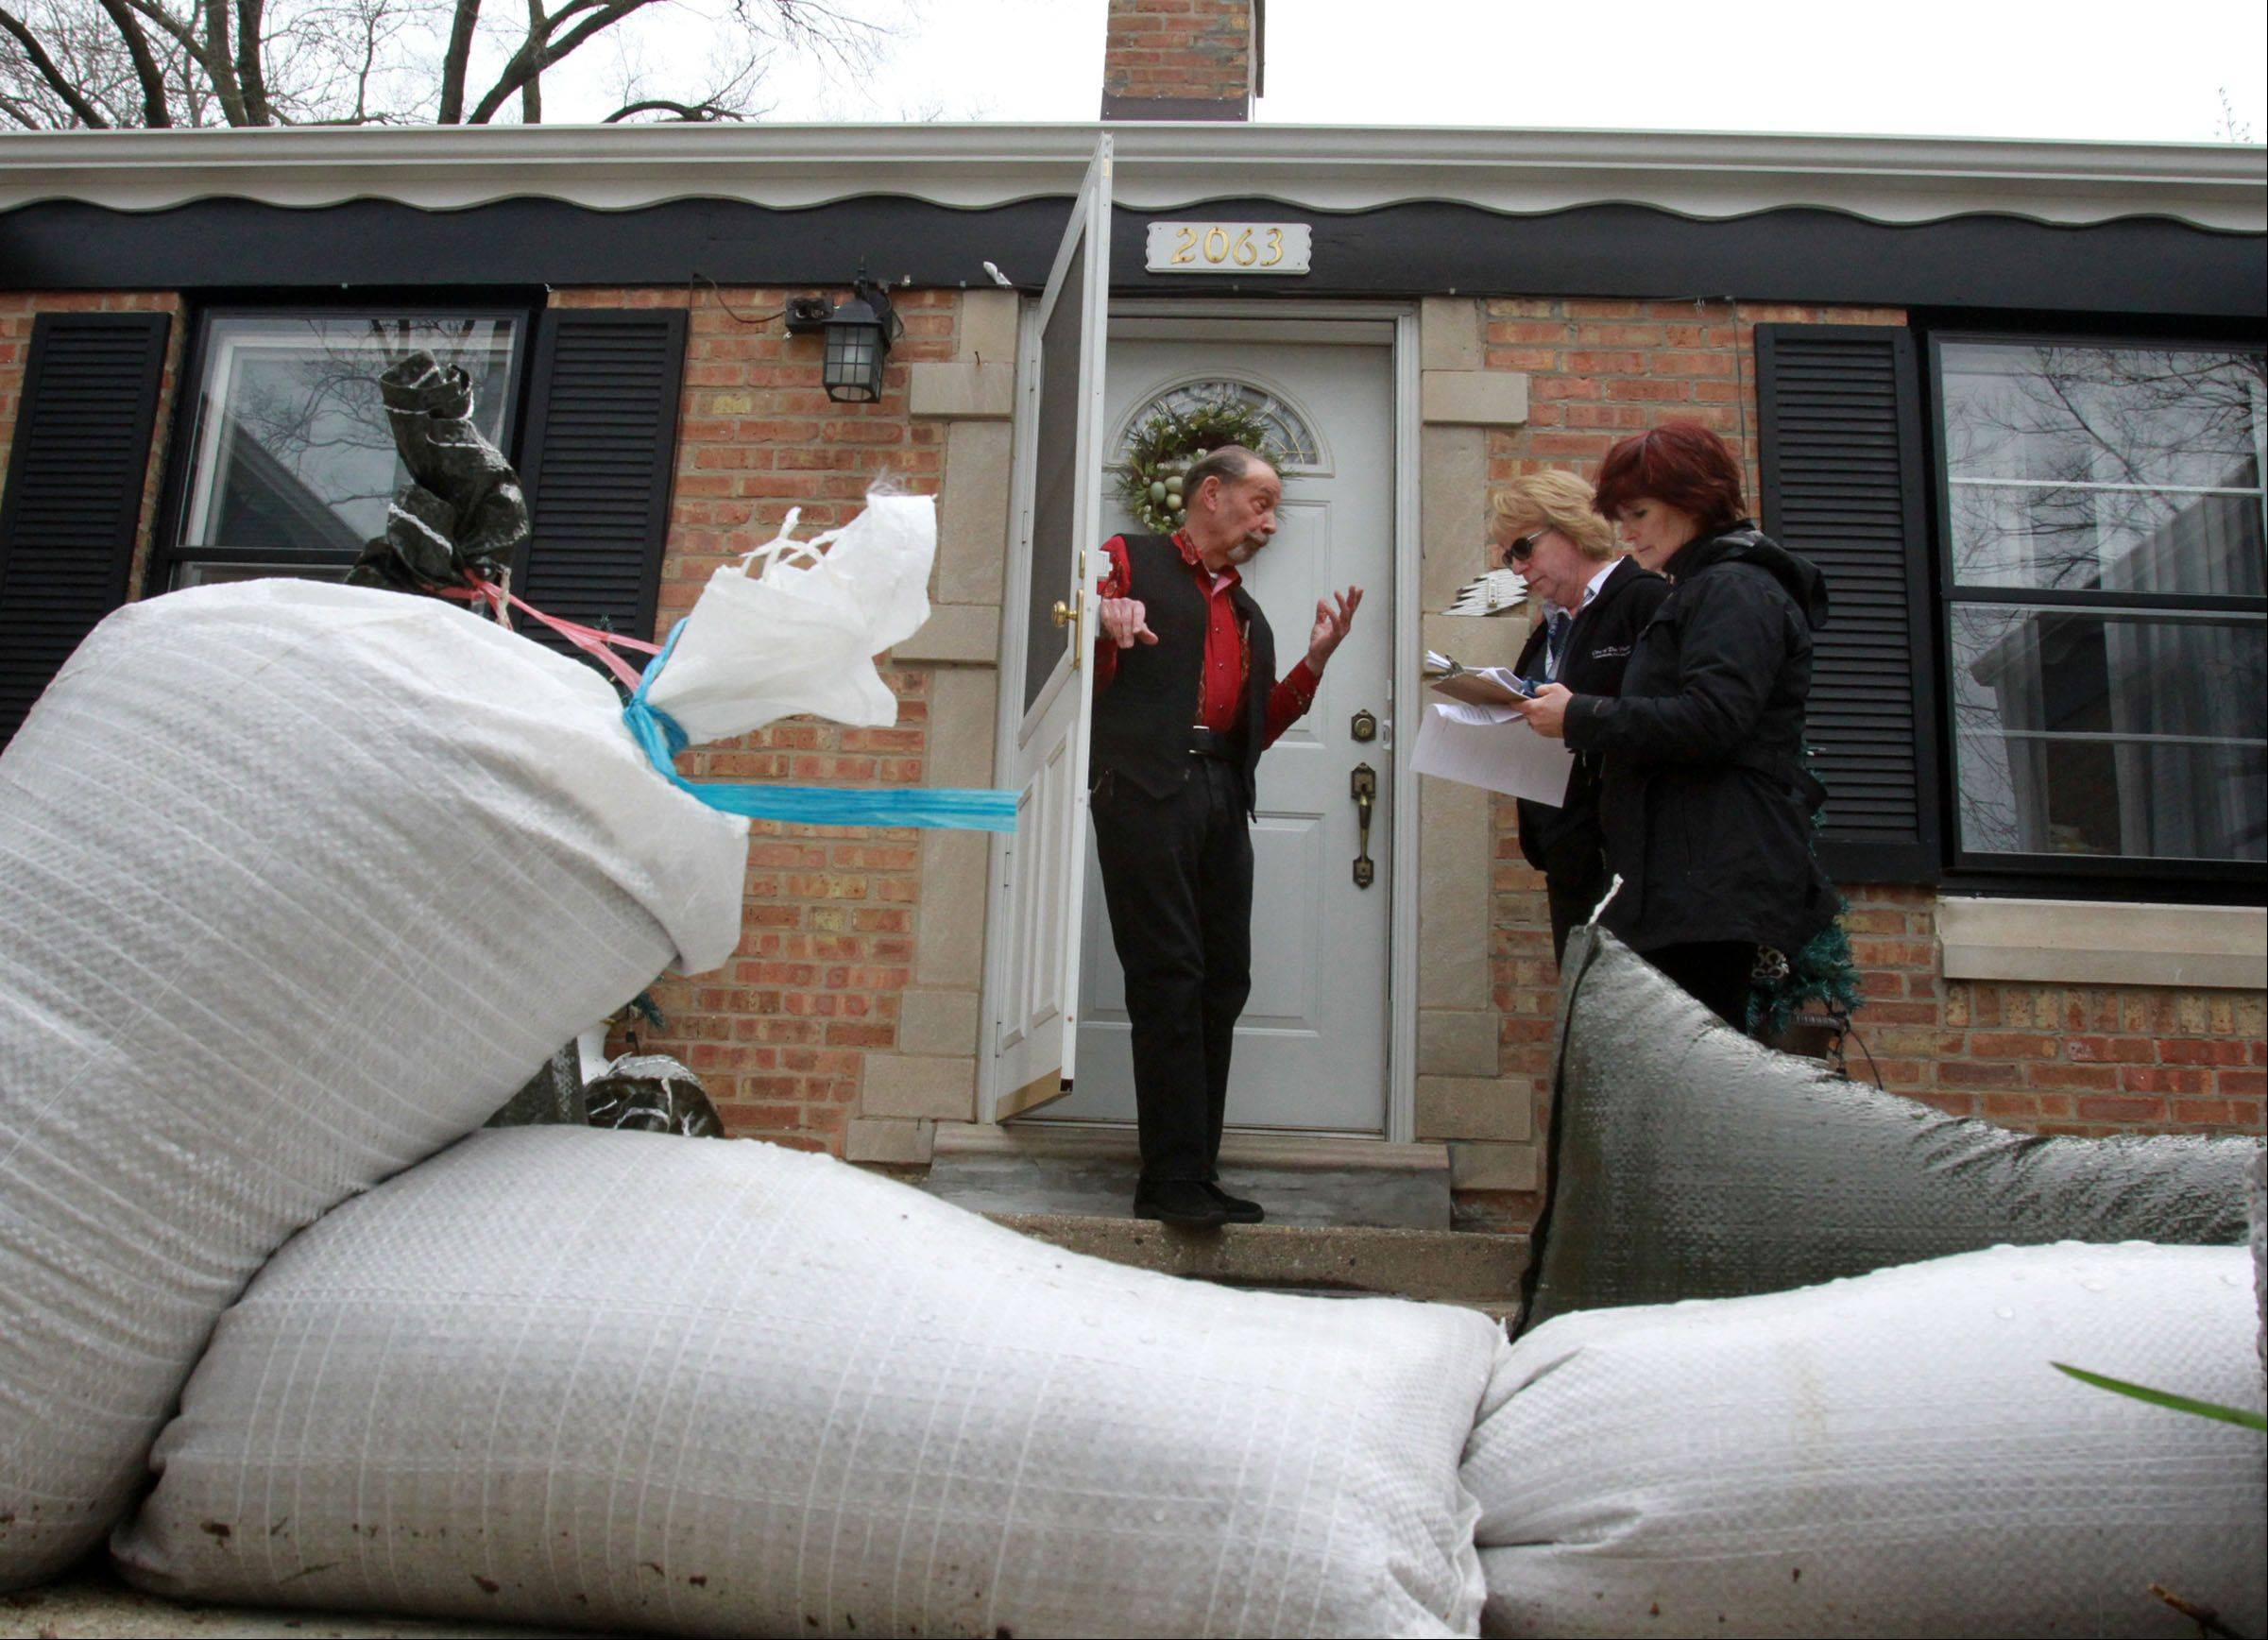 Des Plaines building inspectors Davorka Kirincic and Pam Lunsmann ask John Marton on Birch Street about flooding in his home and yard on Tuesday.